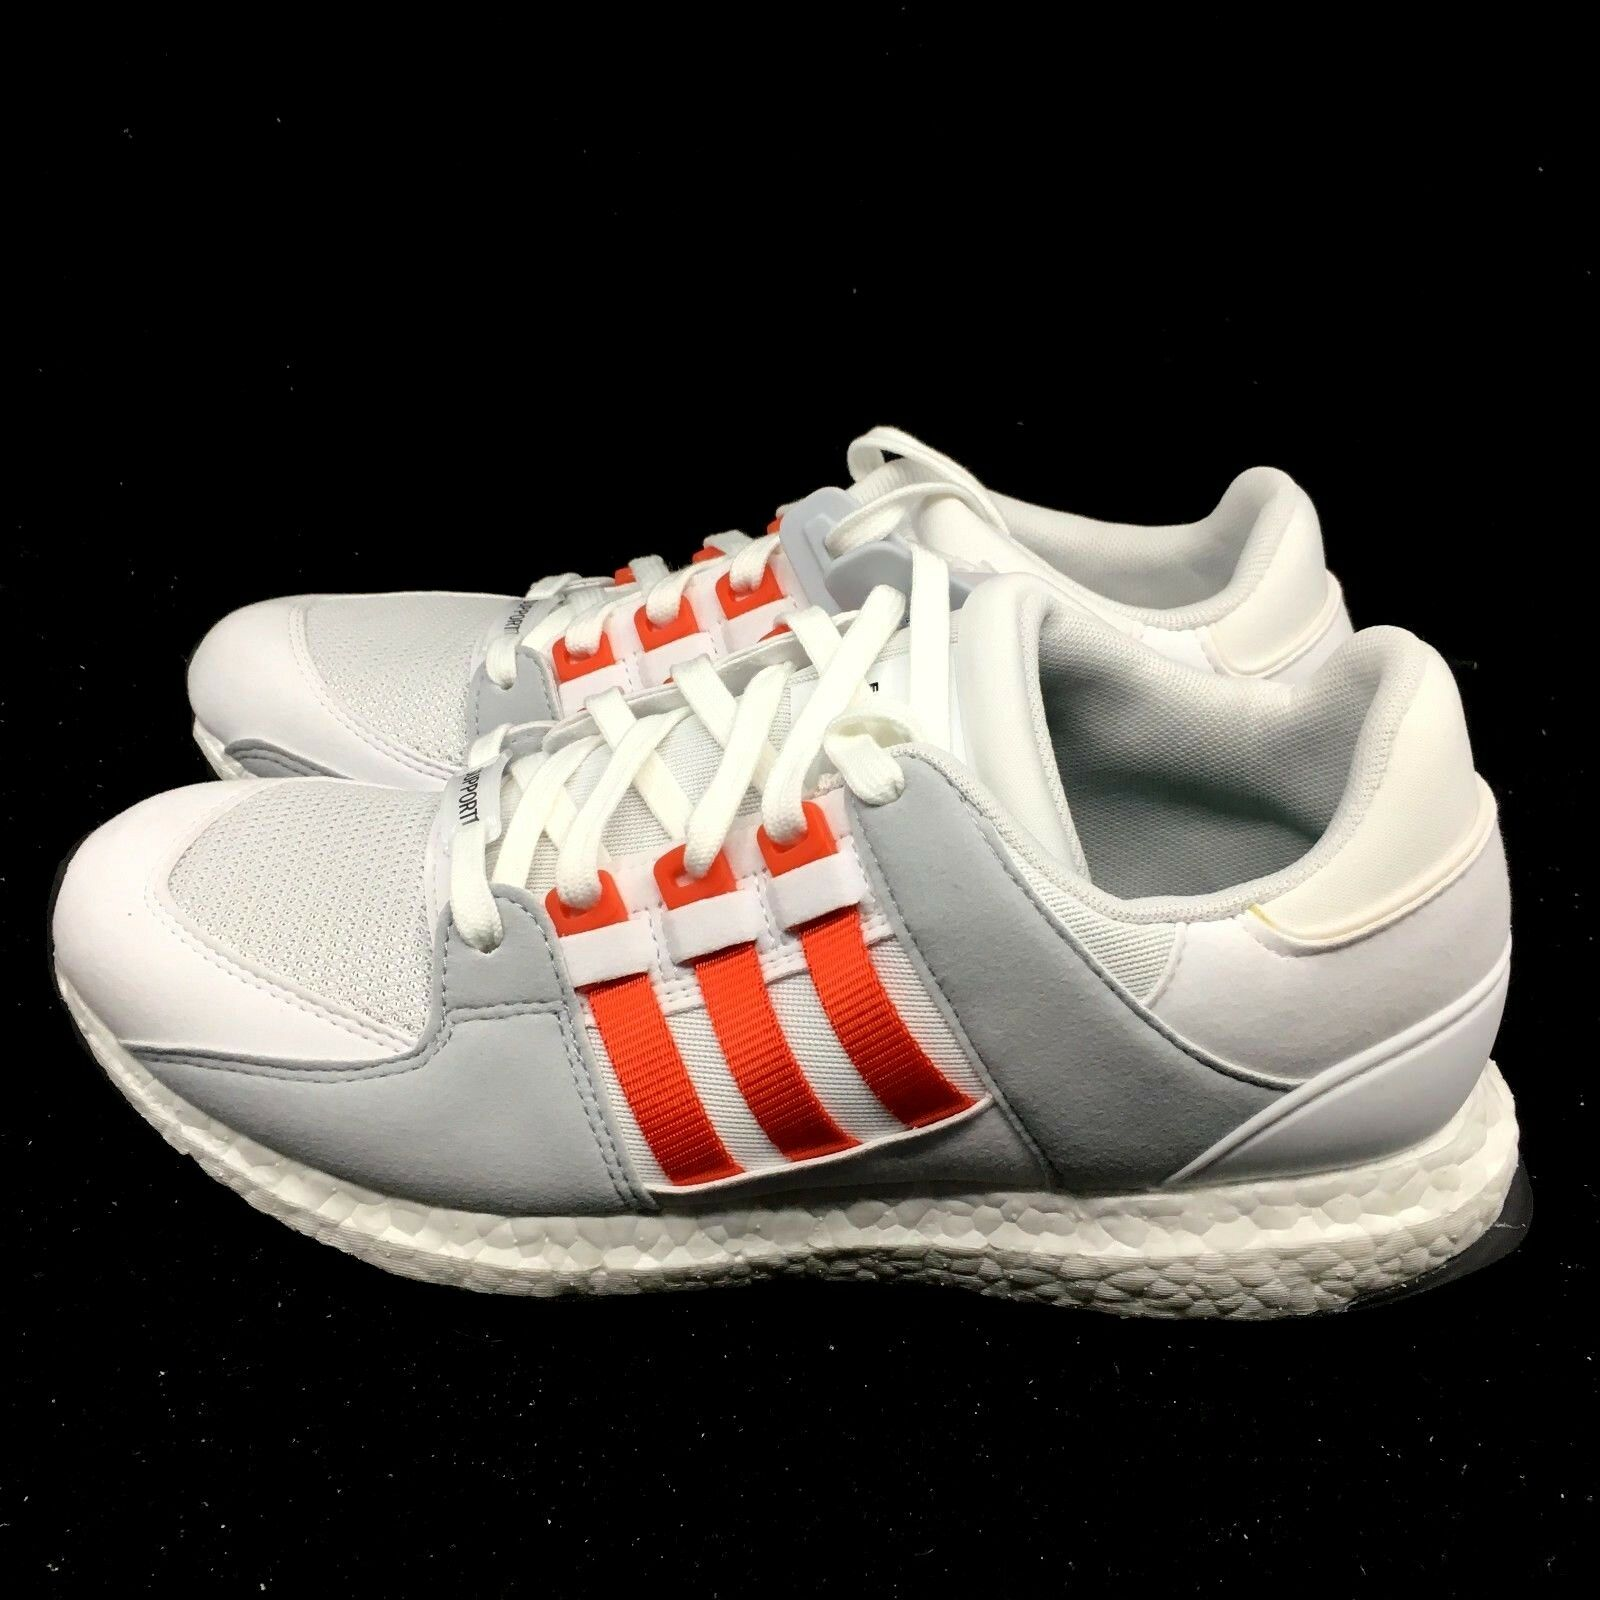 6441d4a70 New ADIDAS EQT SUPPORT ULTRA BOOST MENS SHOES White Bold orange ...